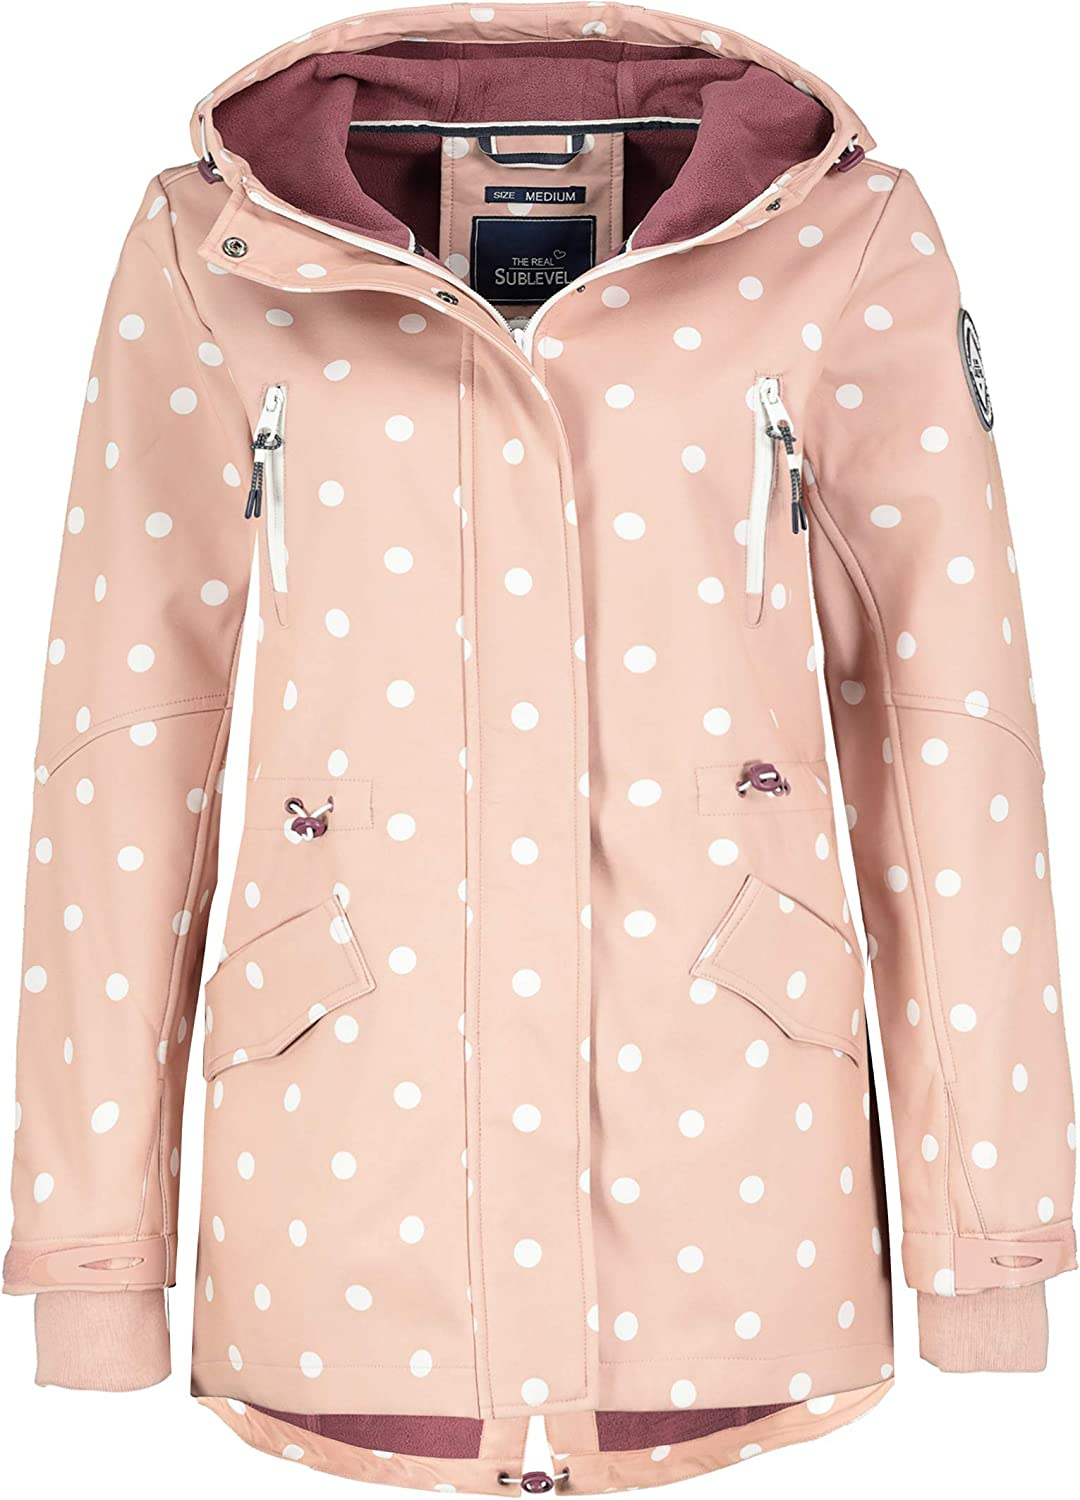 Sublevel Damen Softshell-Jacke Kurzmantel mit Kapuze & Print Light-rose-white